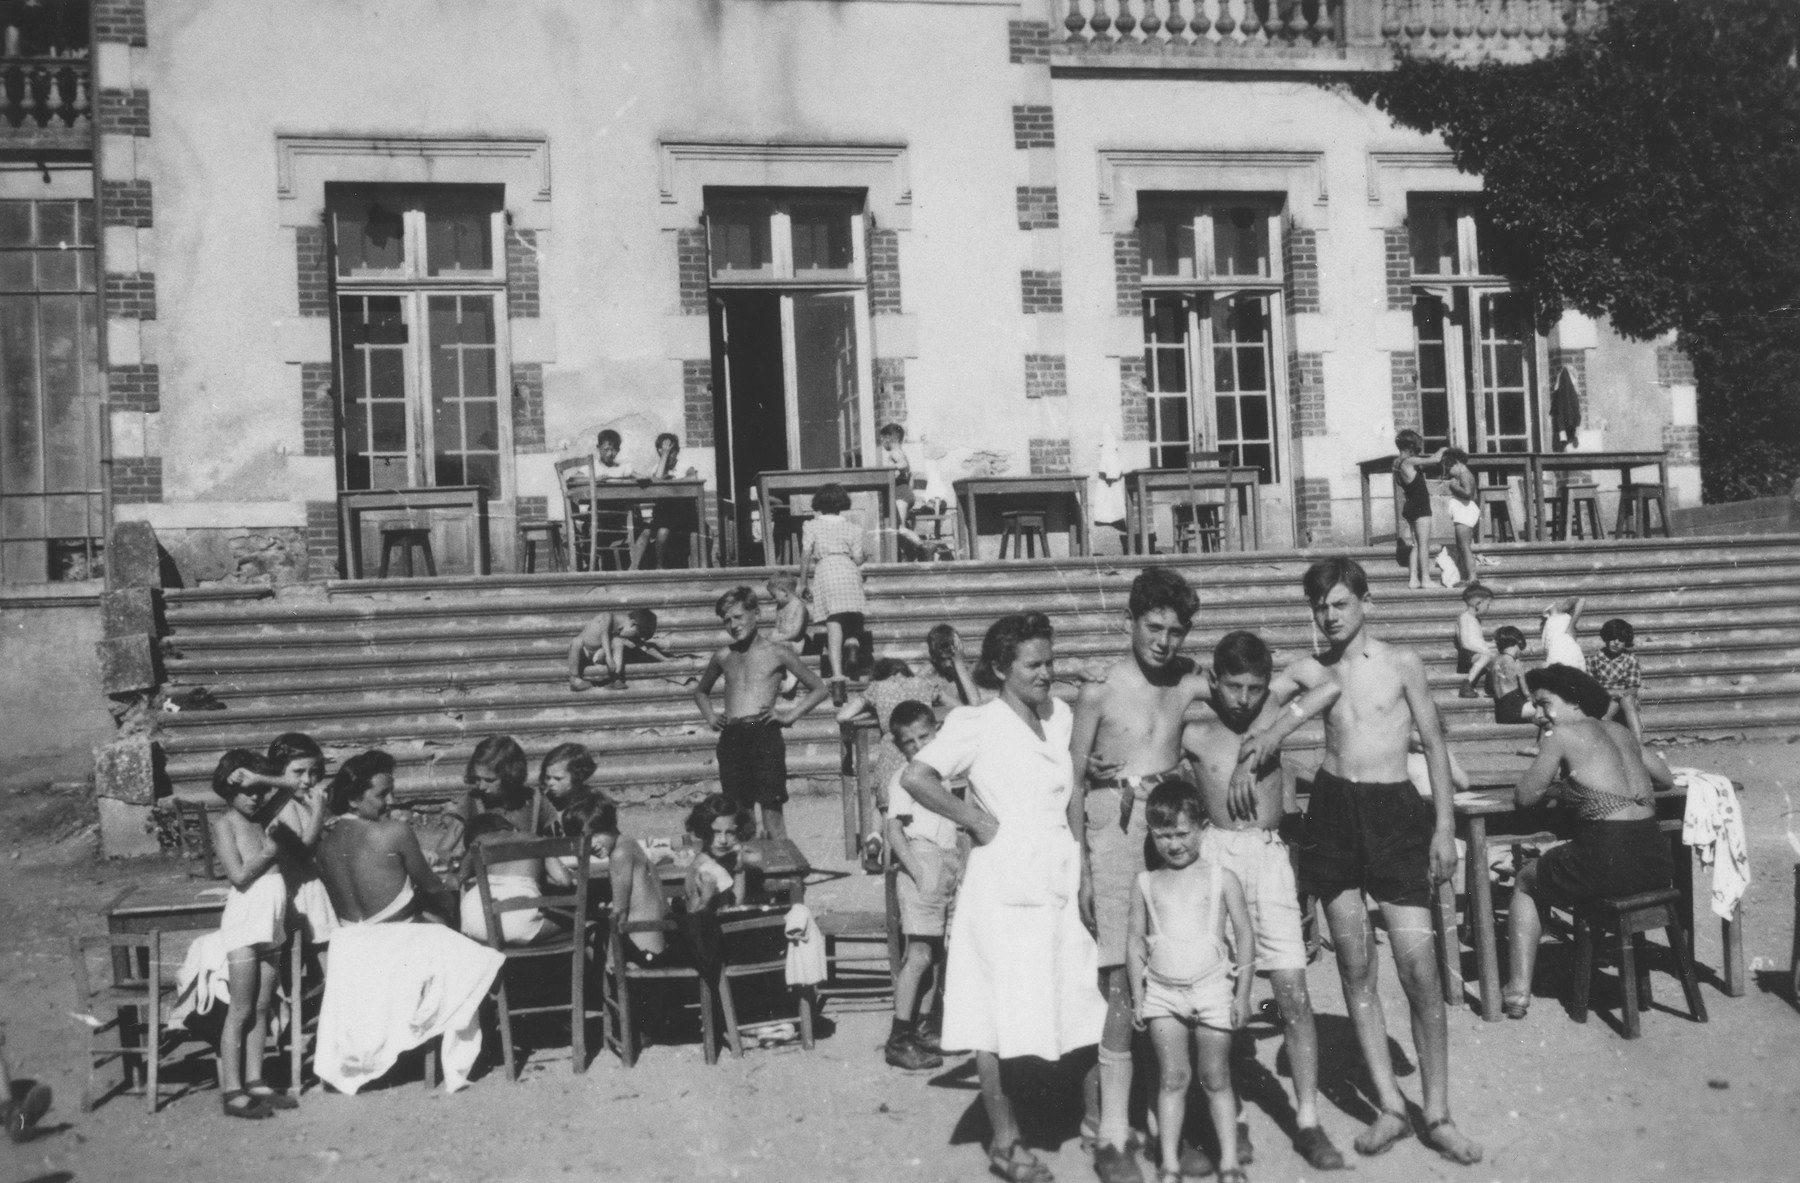 Jewish refugee children and staff members of the Chabannes children's home relax in the sun outside the home.